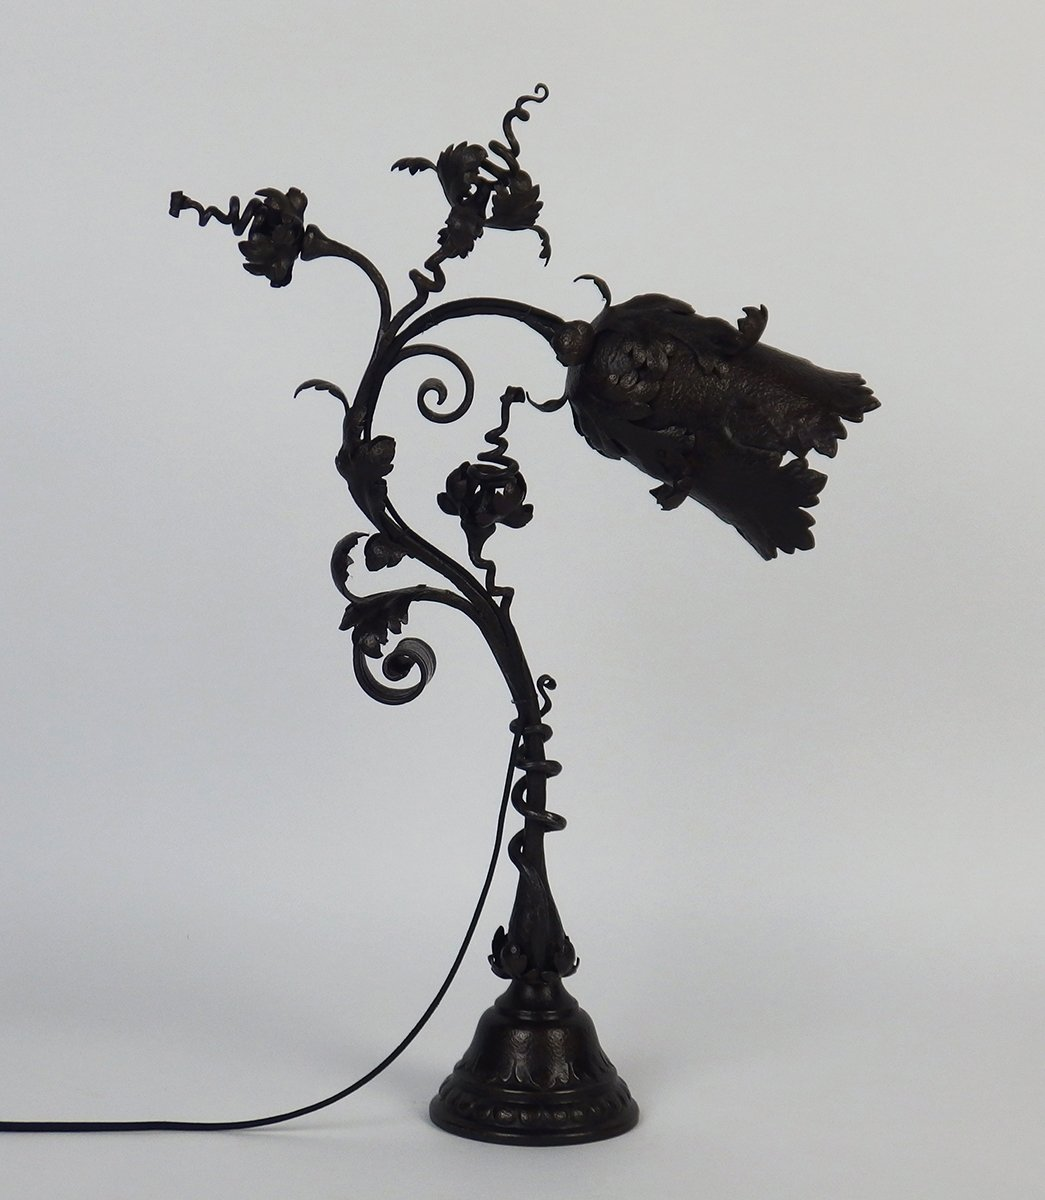 Antique art nouveau wrought iron table lamp by f marrol for sale antique art nouveau wrought iron table lamp by f marrol for sale at pamono geotapseo Image collections